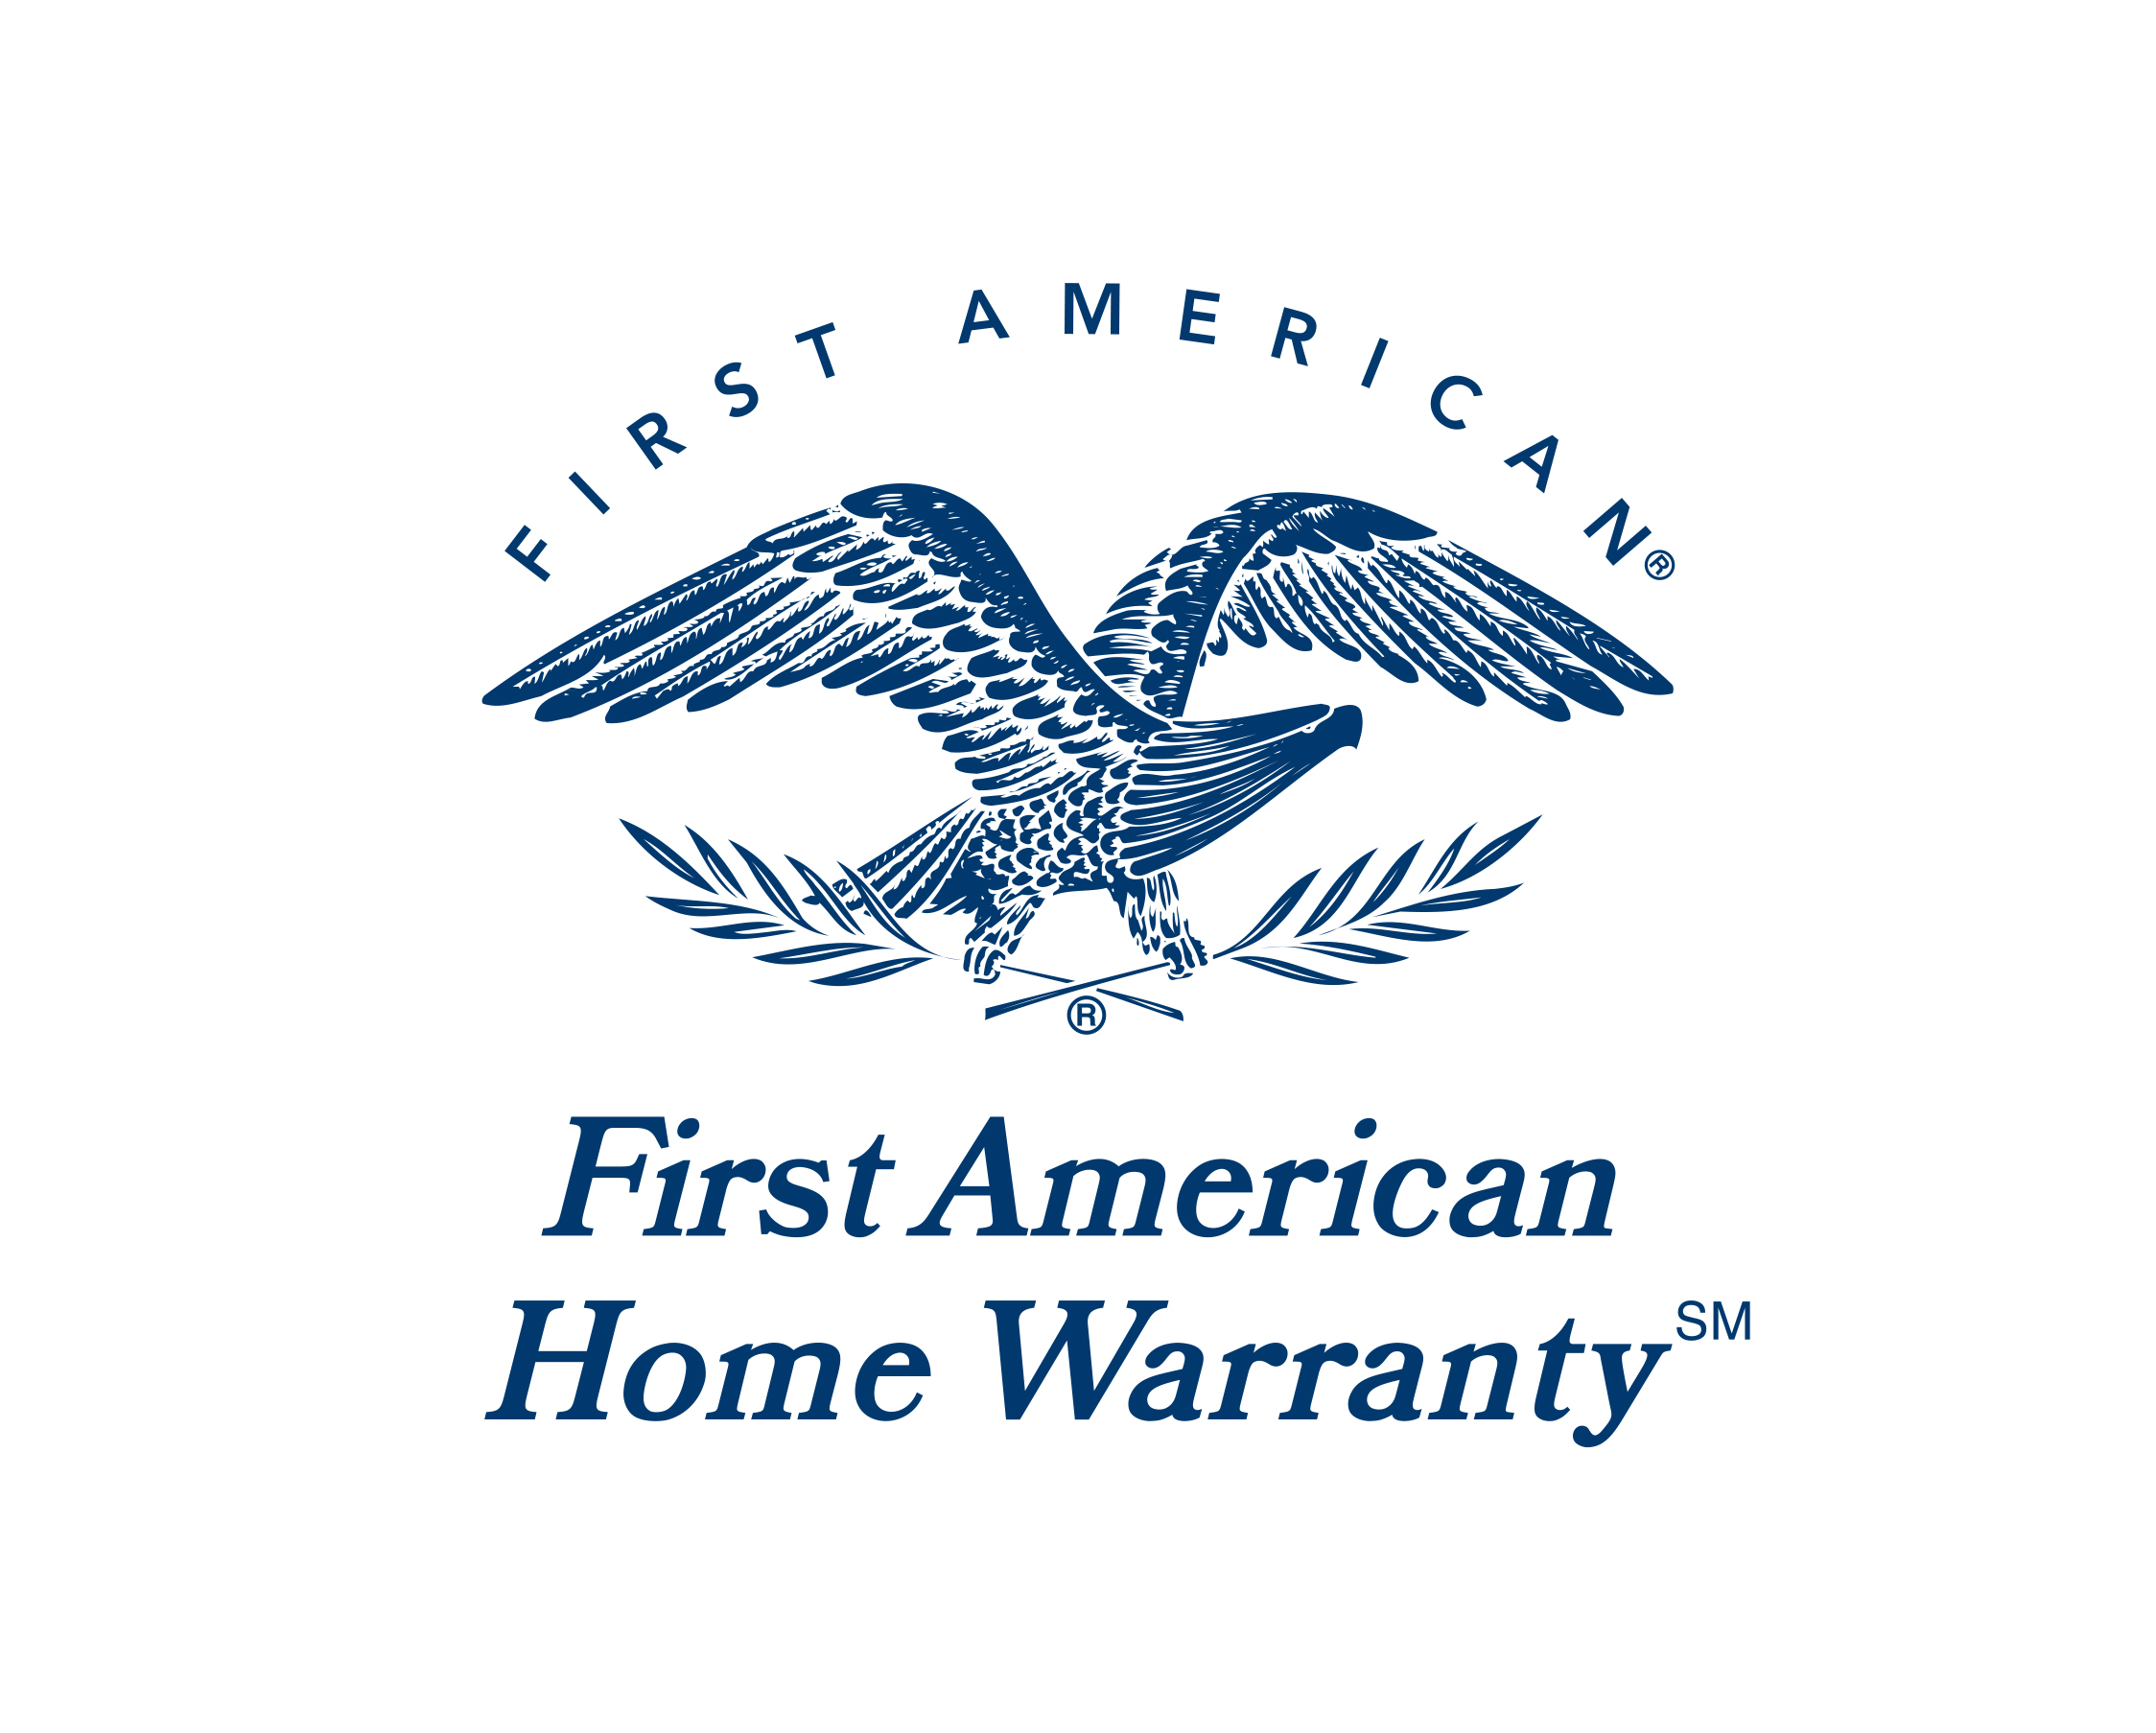 Home Warranty Plan Sears - Reply from first american home warranty